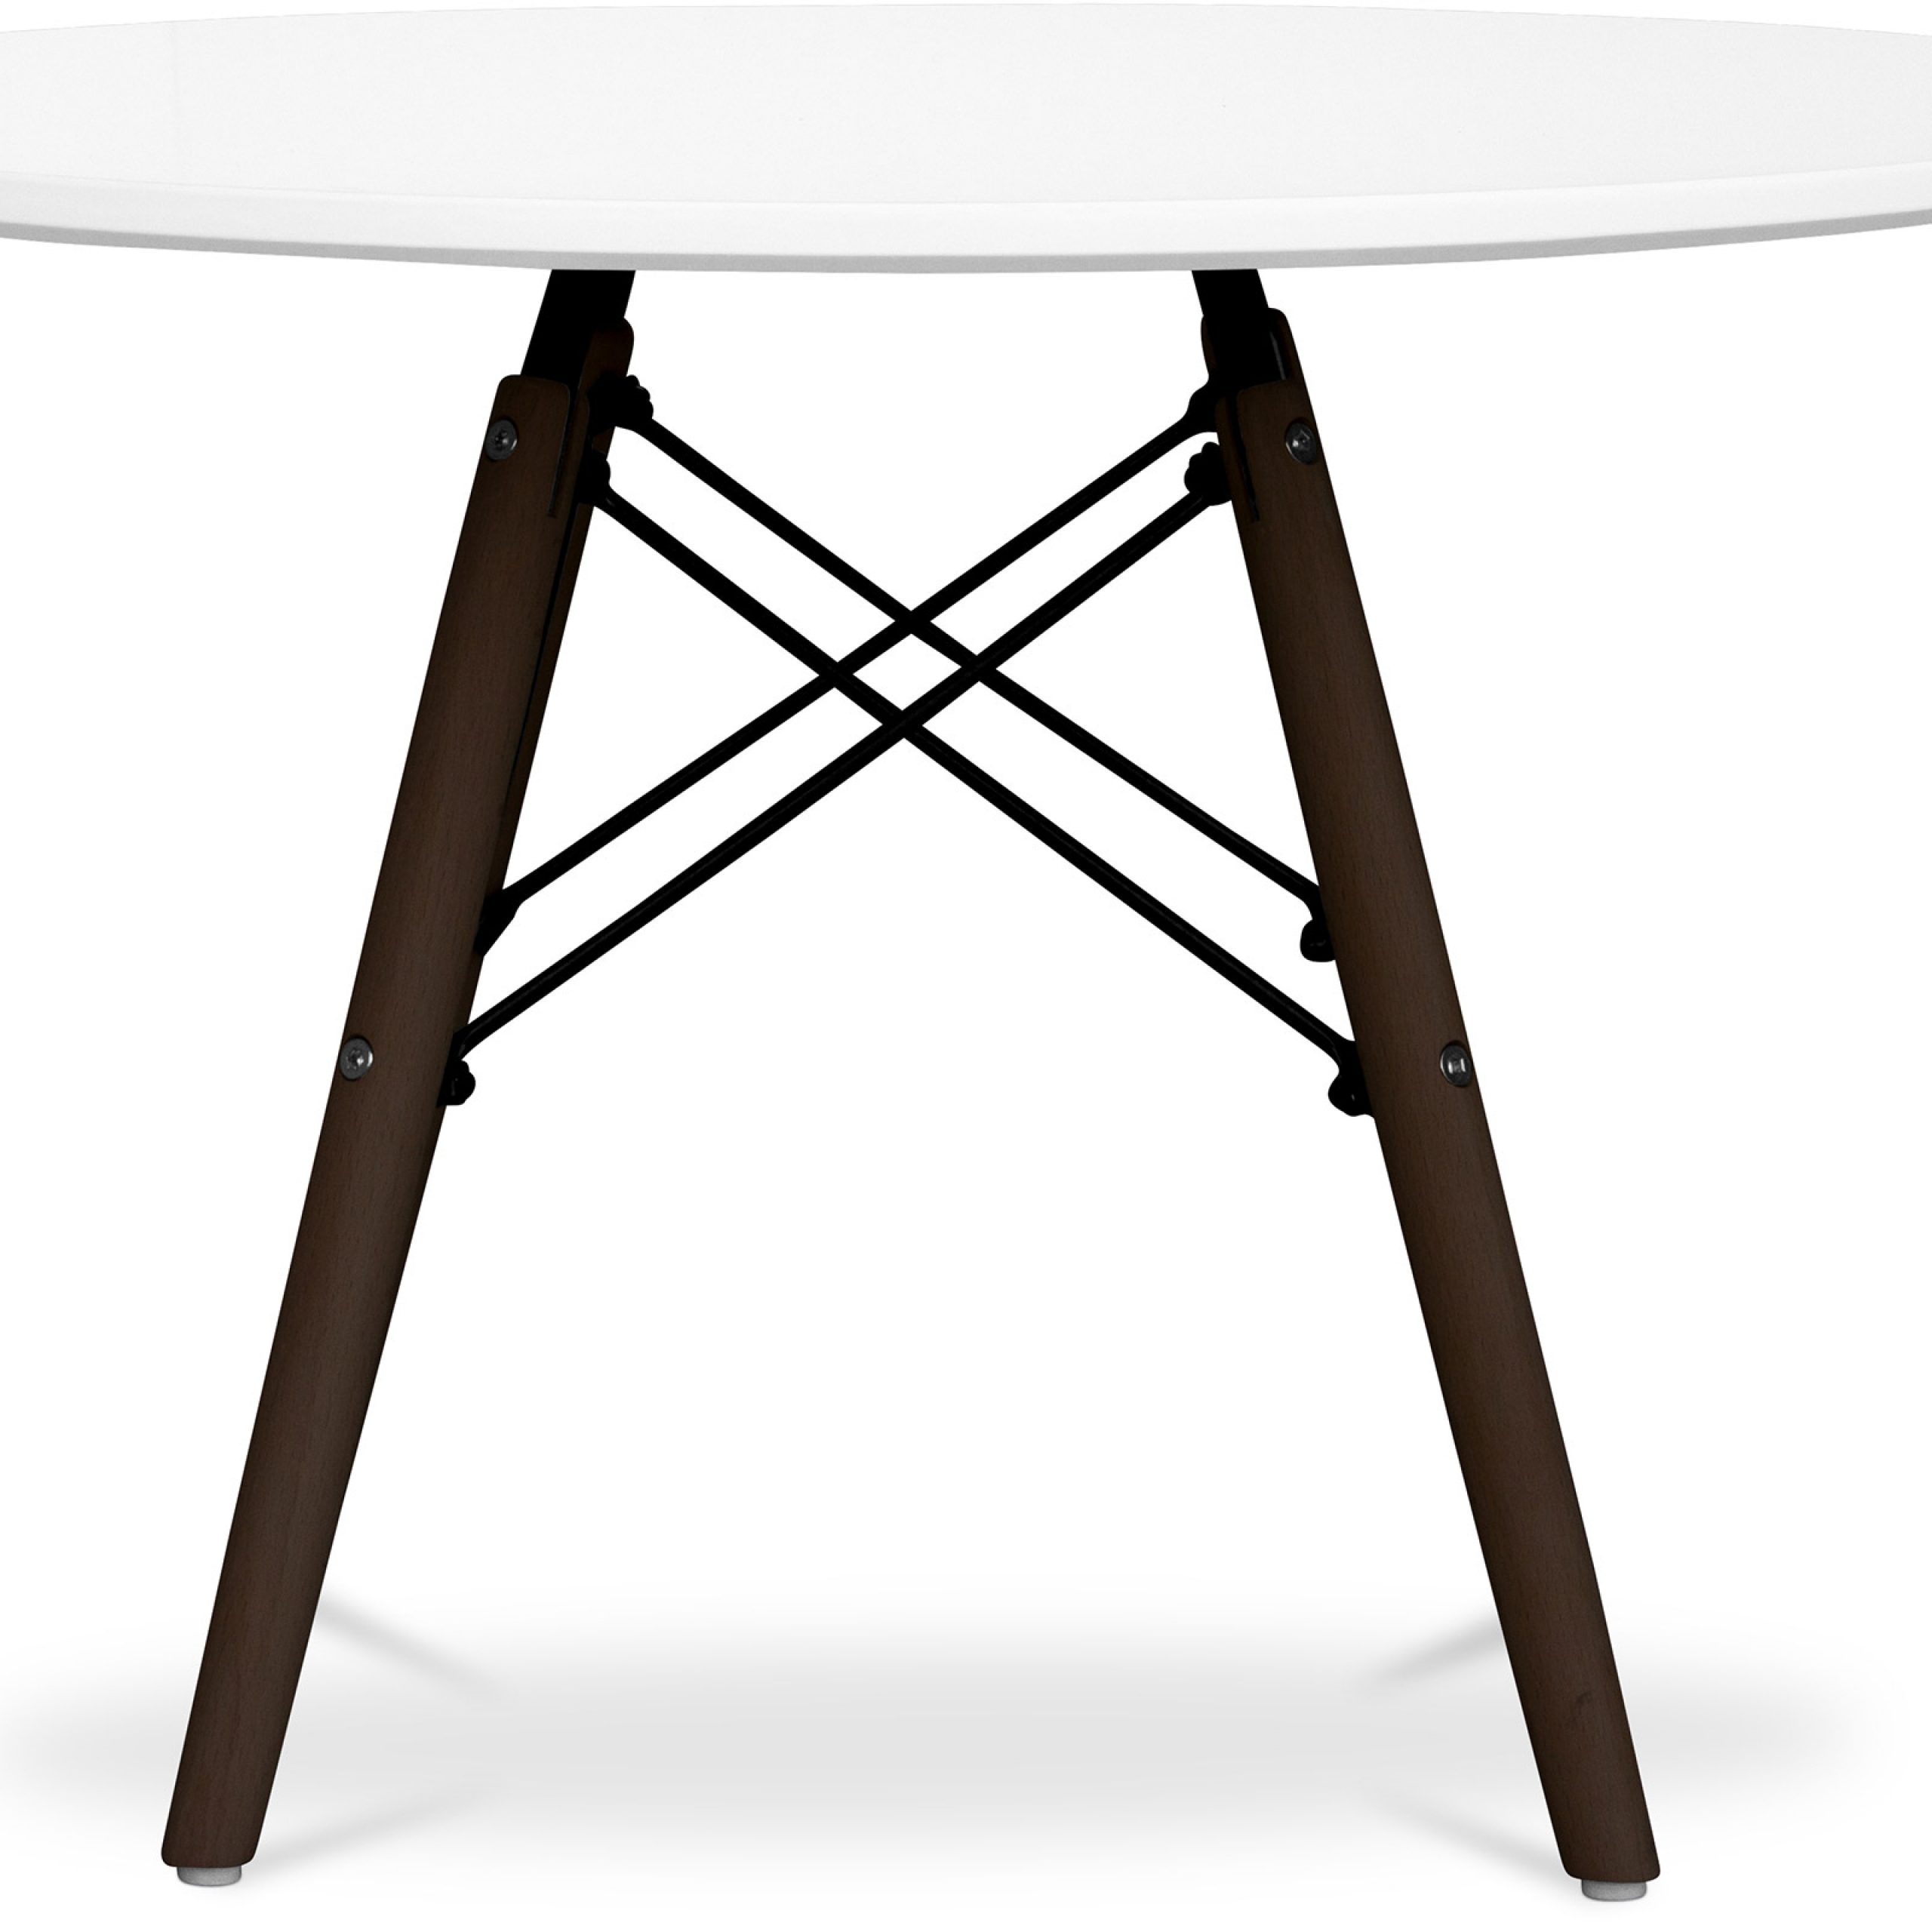 Famous Eames Style Dining Tables With Wooden Legs Intended For Dark Legs Dsw Kids Table Charles Eames – Style – Wood (View 6 of 16)